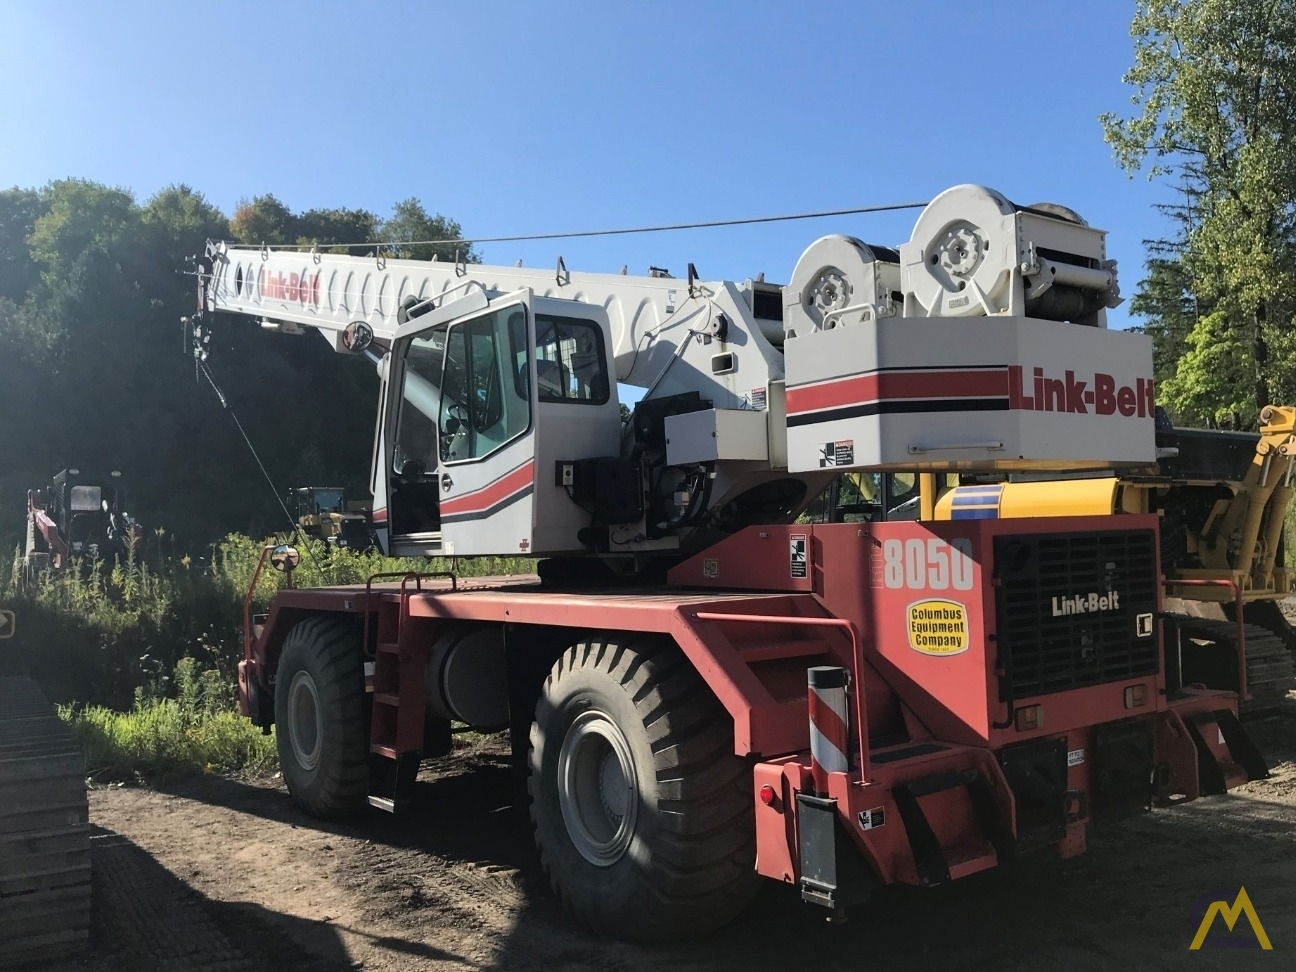 Link-Belt RTC-8050 Series II 50-ton Rough Terrain Cranes 3